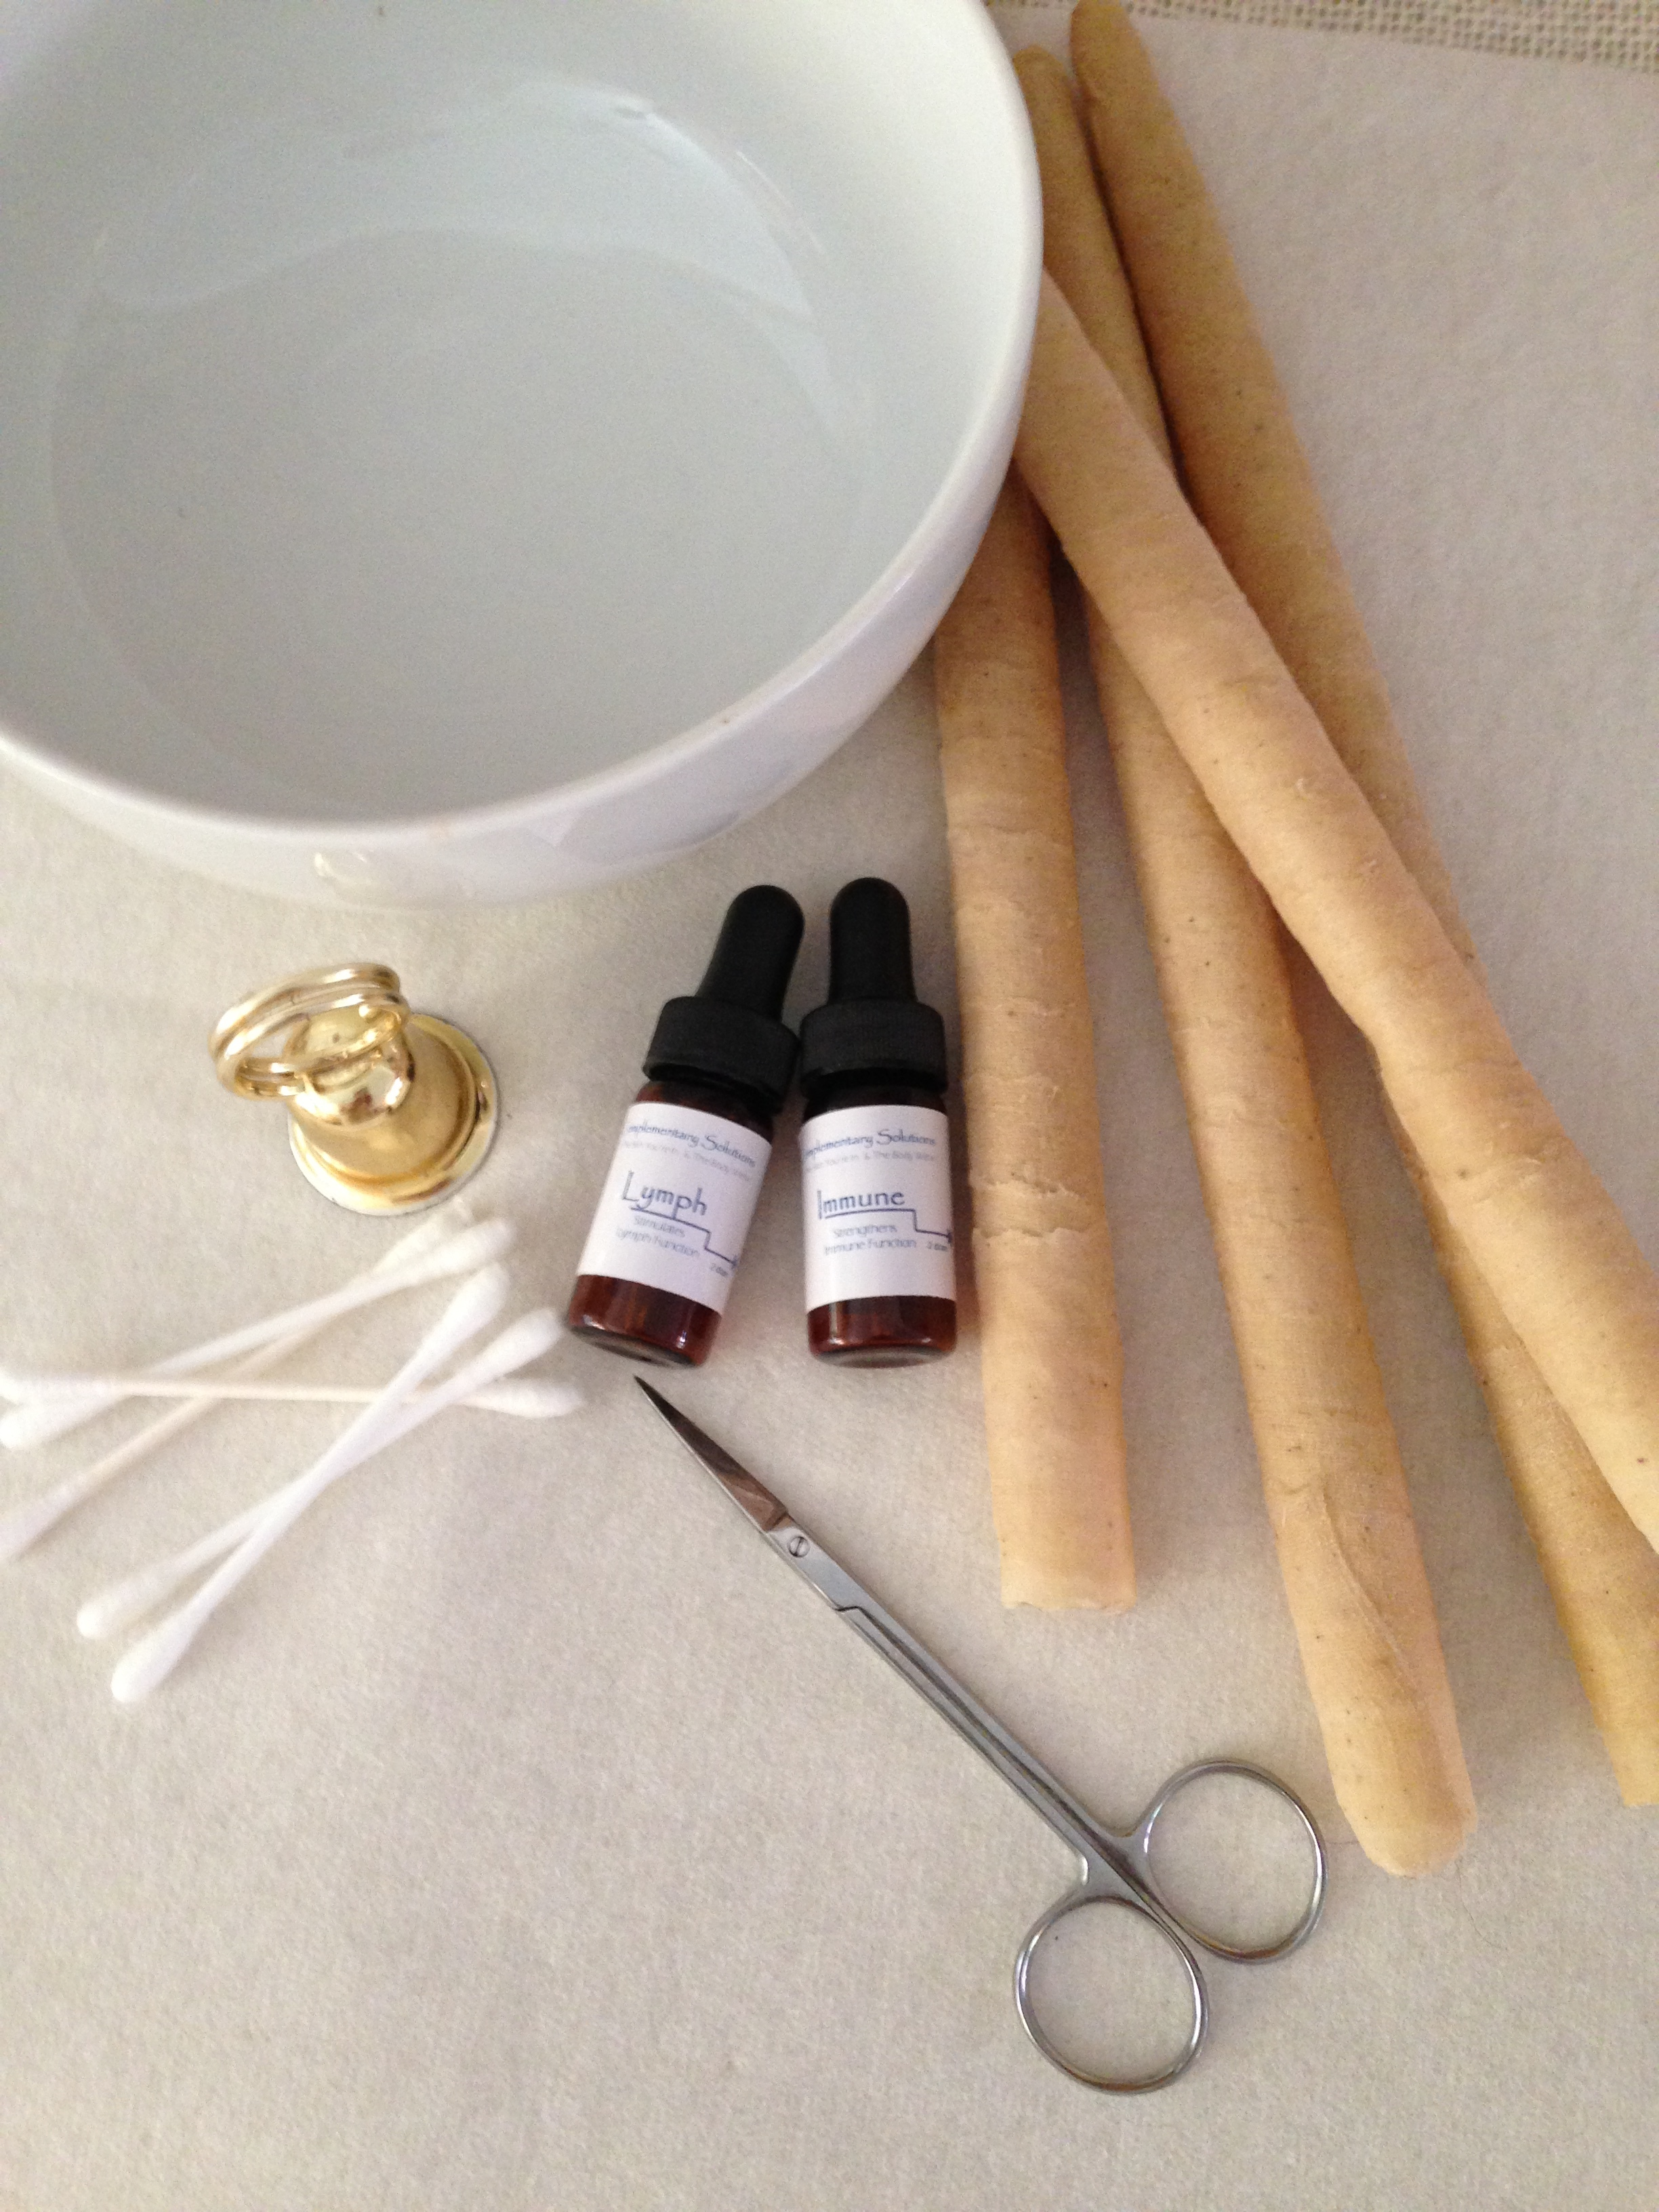 Ear Candles shown with Immune & Lymph  formulas  available for home use.